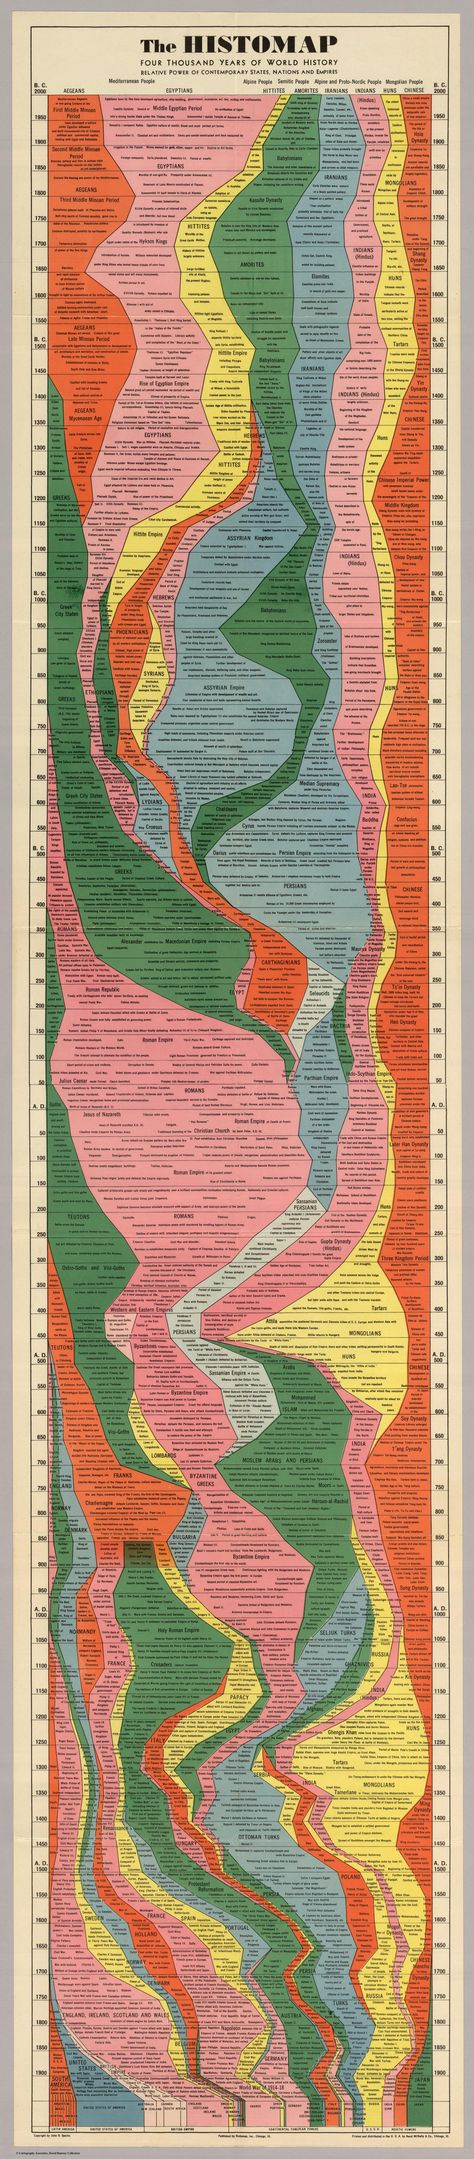 The Histomap of History. We also have the Histomap of Evolution in. Map Size: Four Thousand Years Of World History. 4000 years of world history. Relative power of contemporary states, nations and empires. History Timeline, History Facts, Visual Map, Historia Universal, Historical Maps, World History, Art History, Ancient History, Social Studies